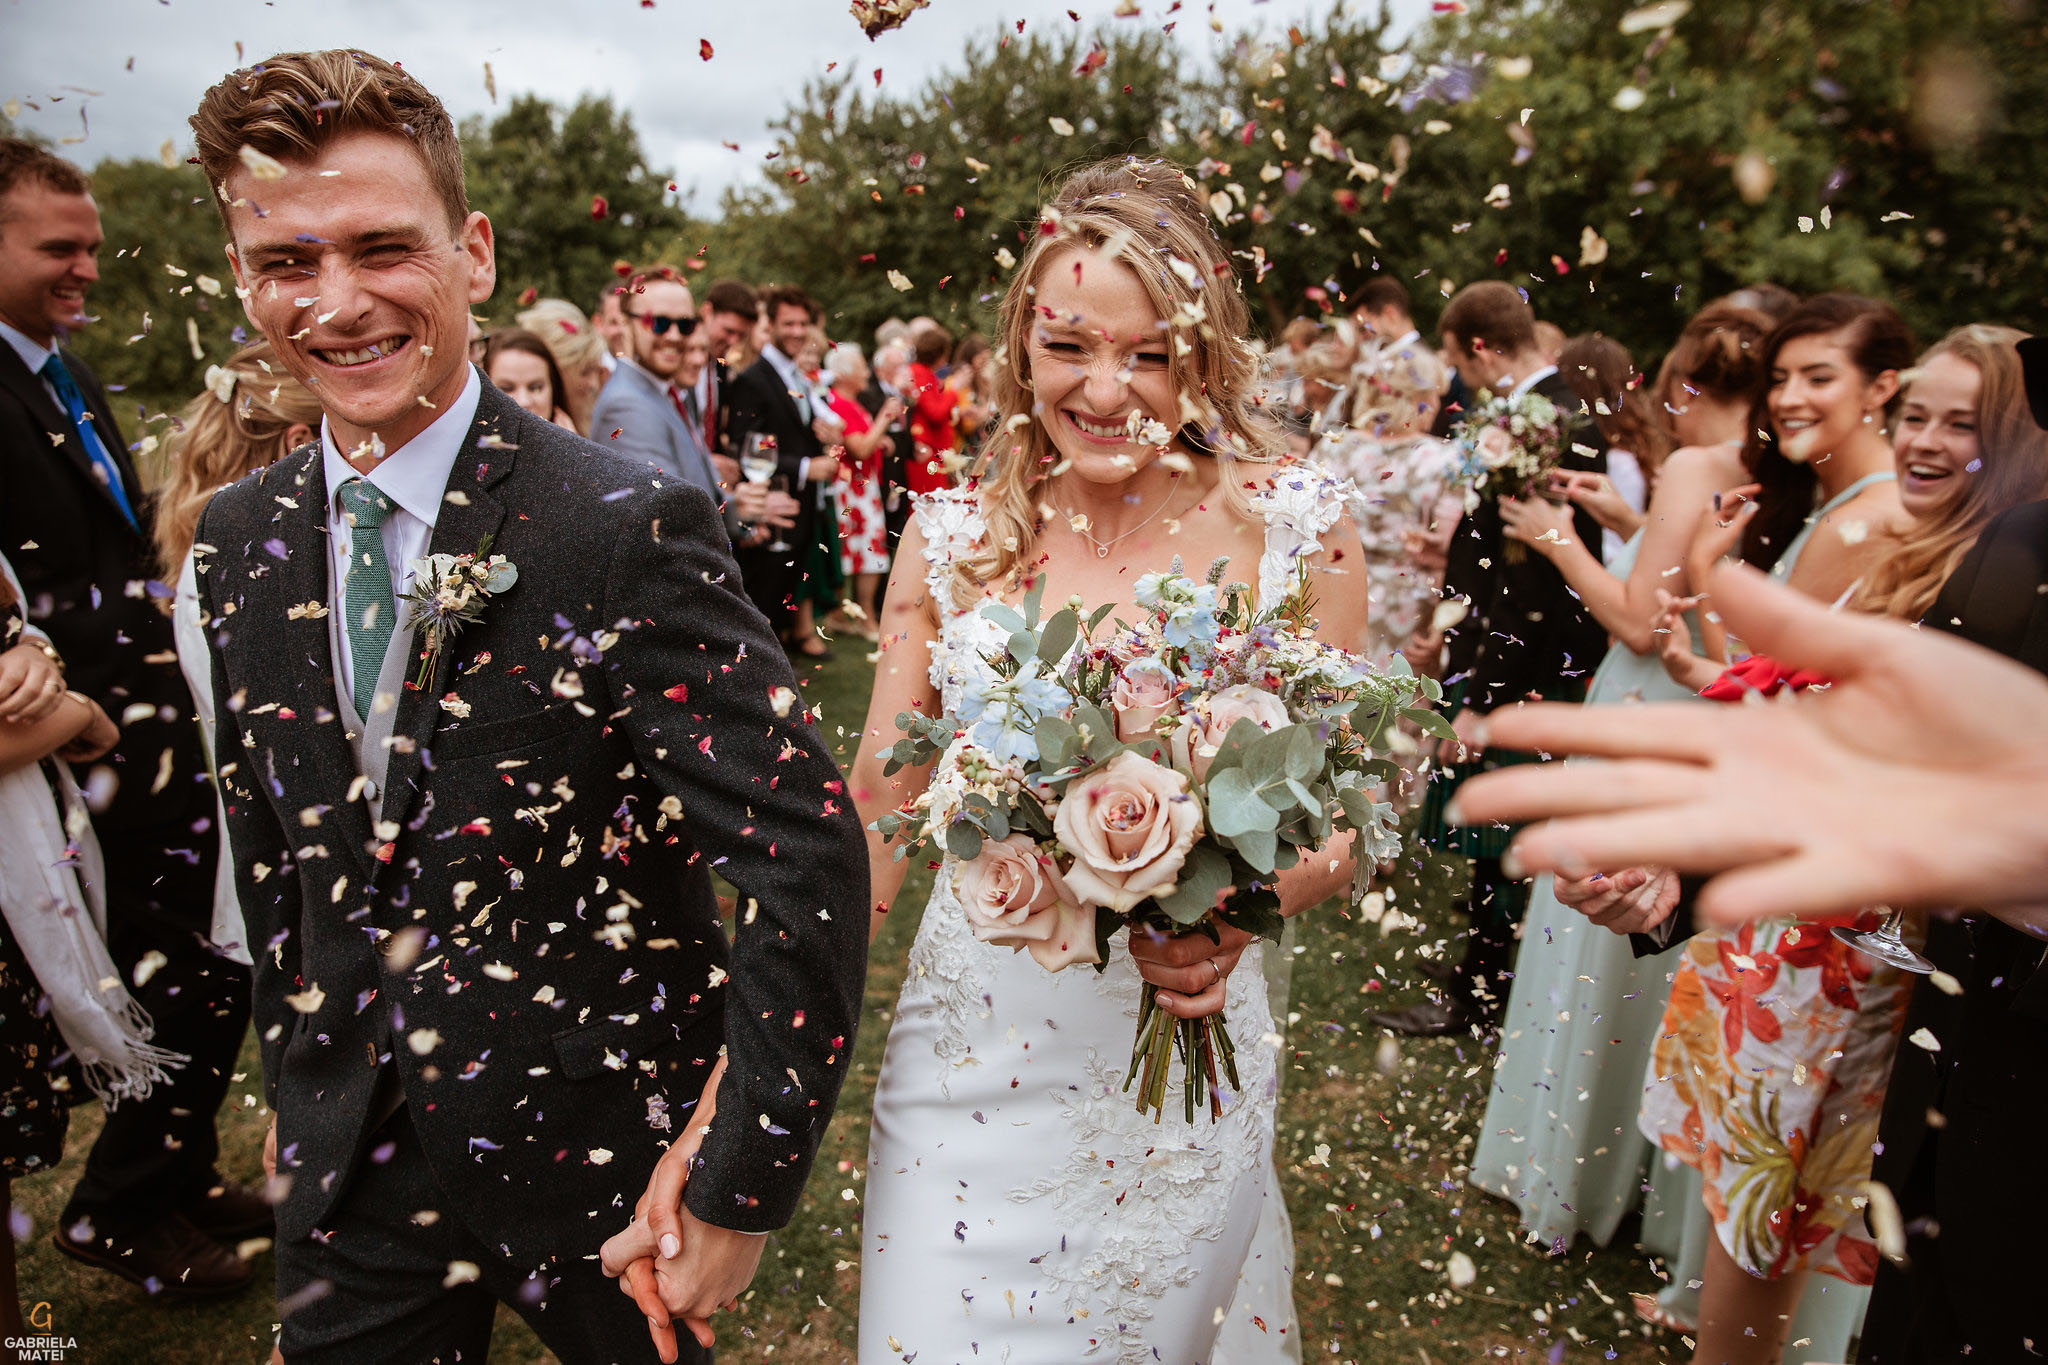 Wedding couple laughing whilst wedding guests throw confetti at them.